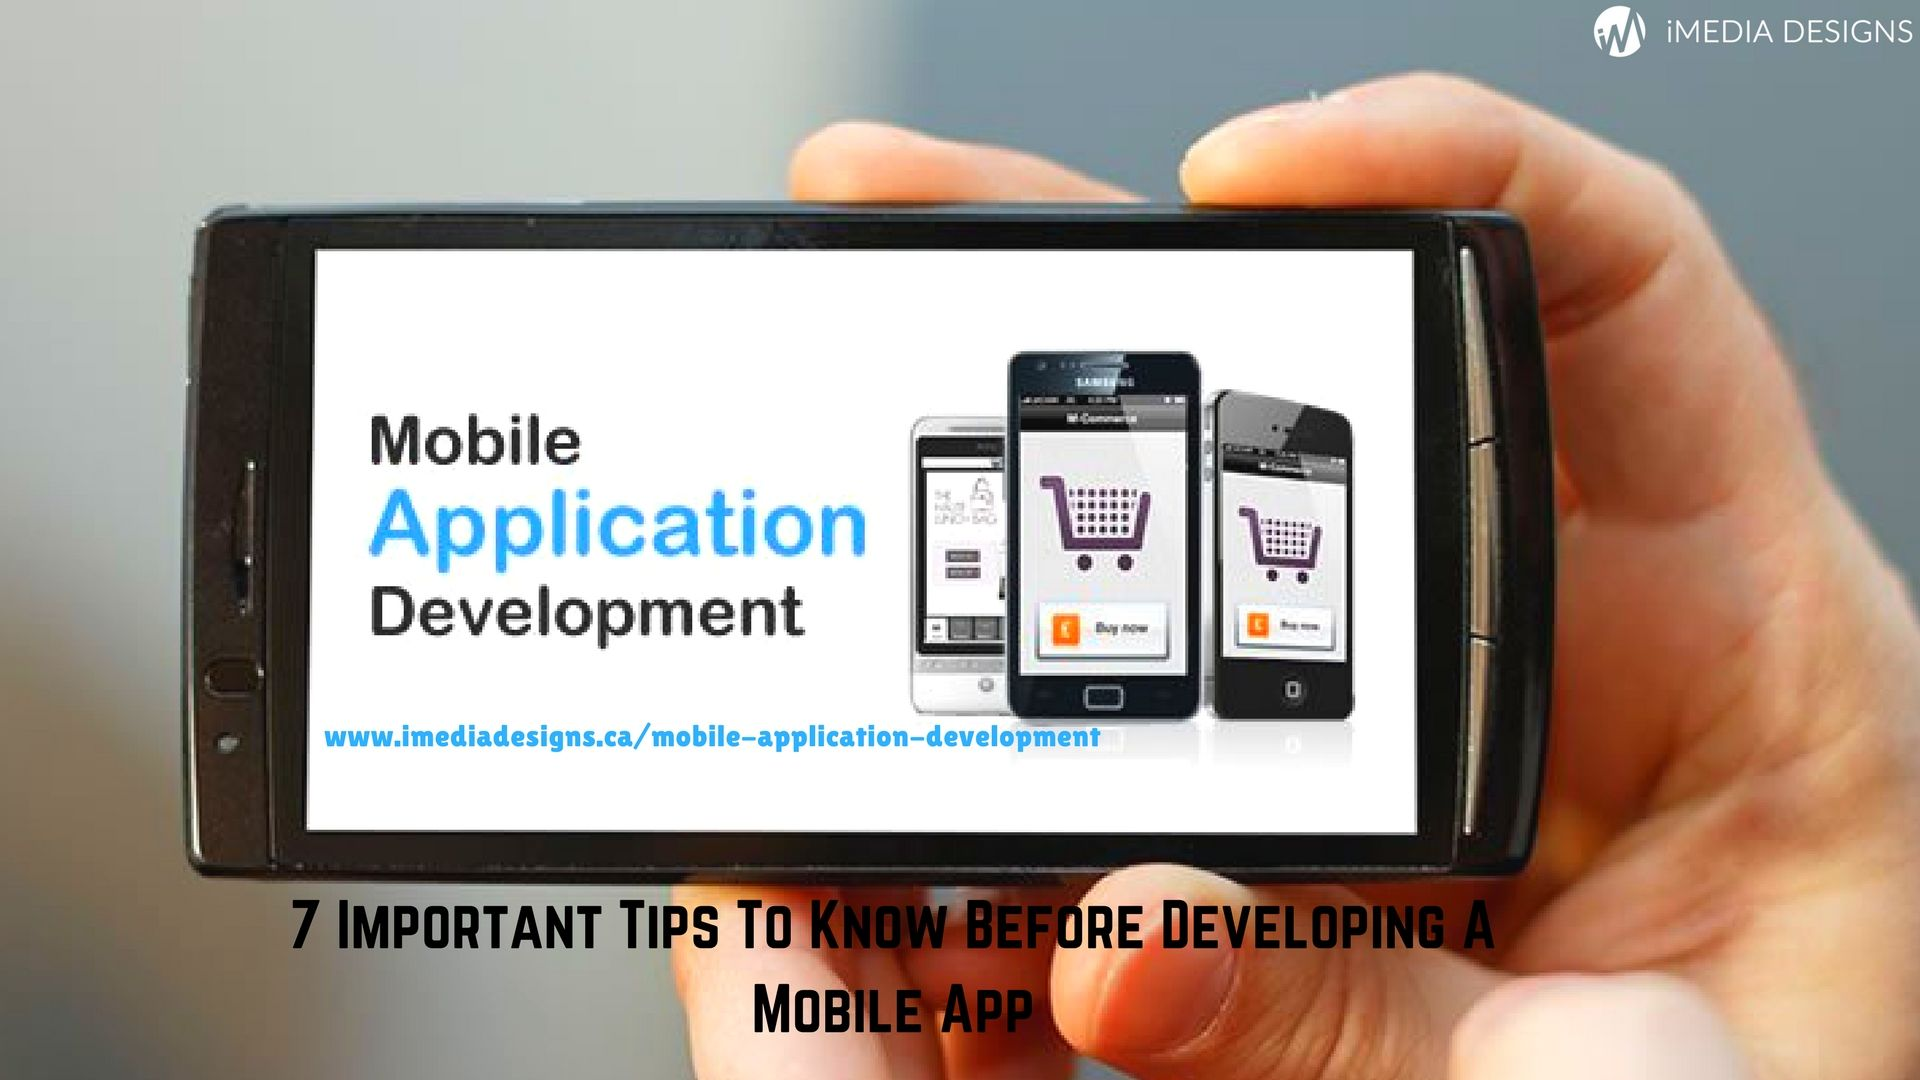 What essential components you will consider while making an mobile application development for android and ios are now easy connectionphase the dedicated mobile app development company offers easy to use and solutioingenieria Choice Image